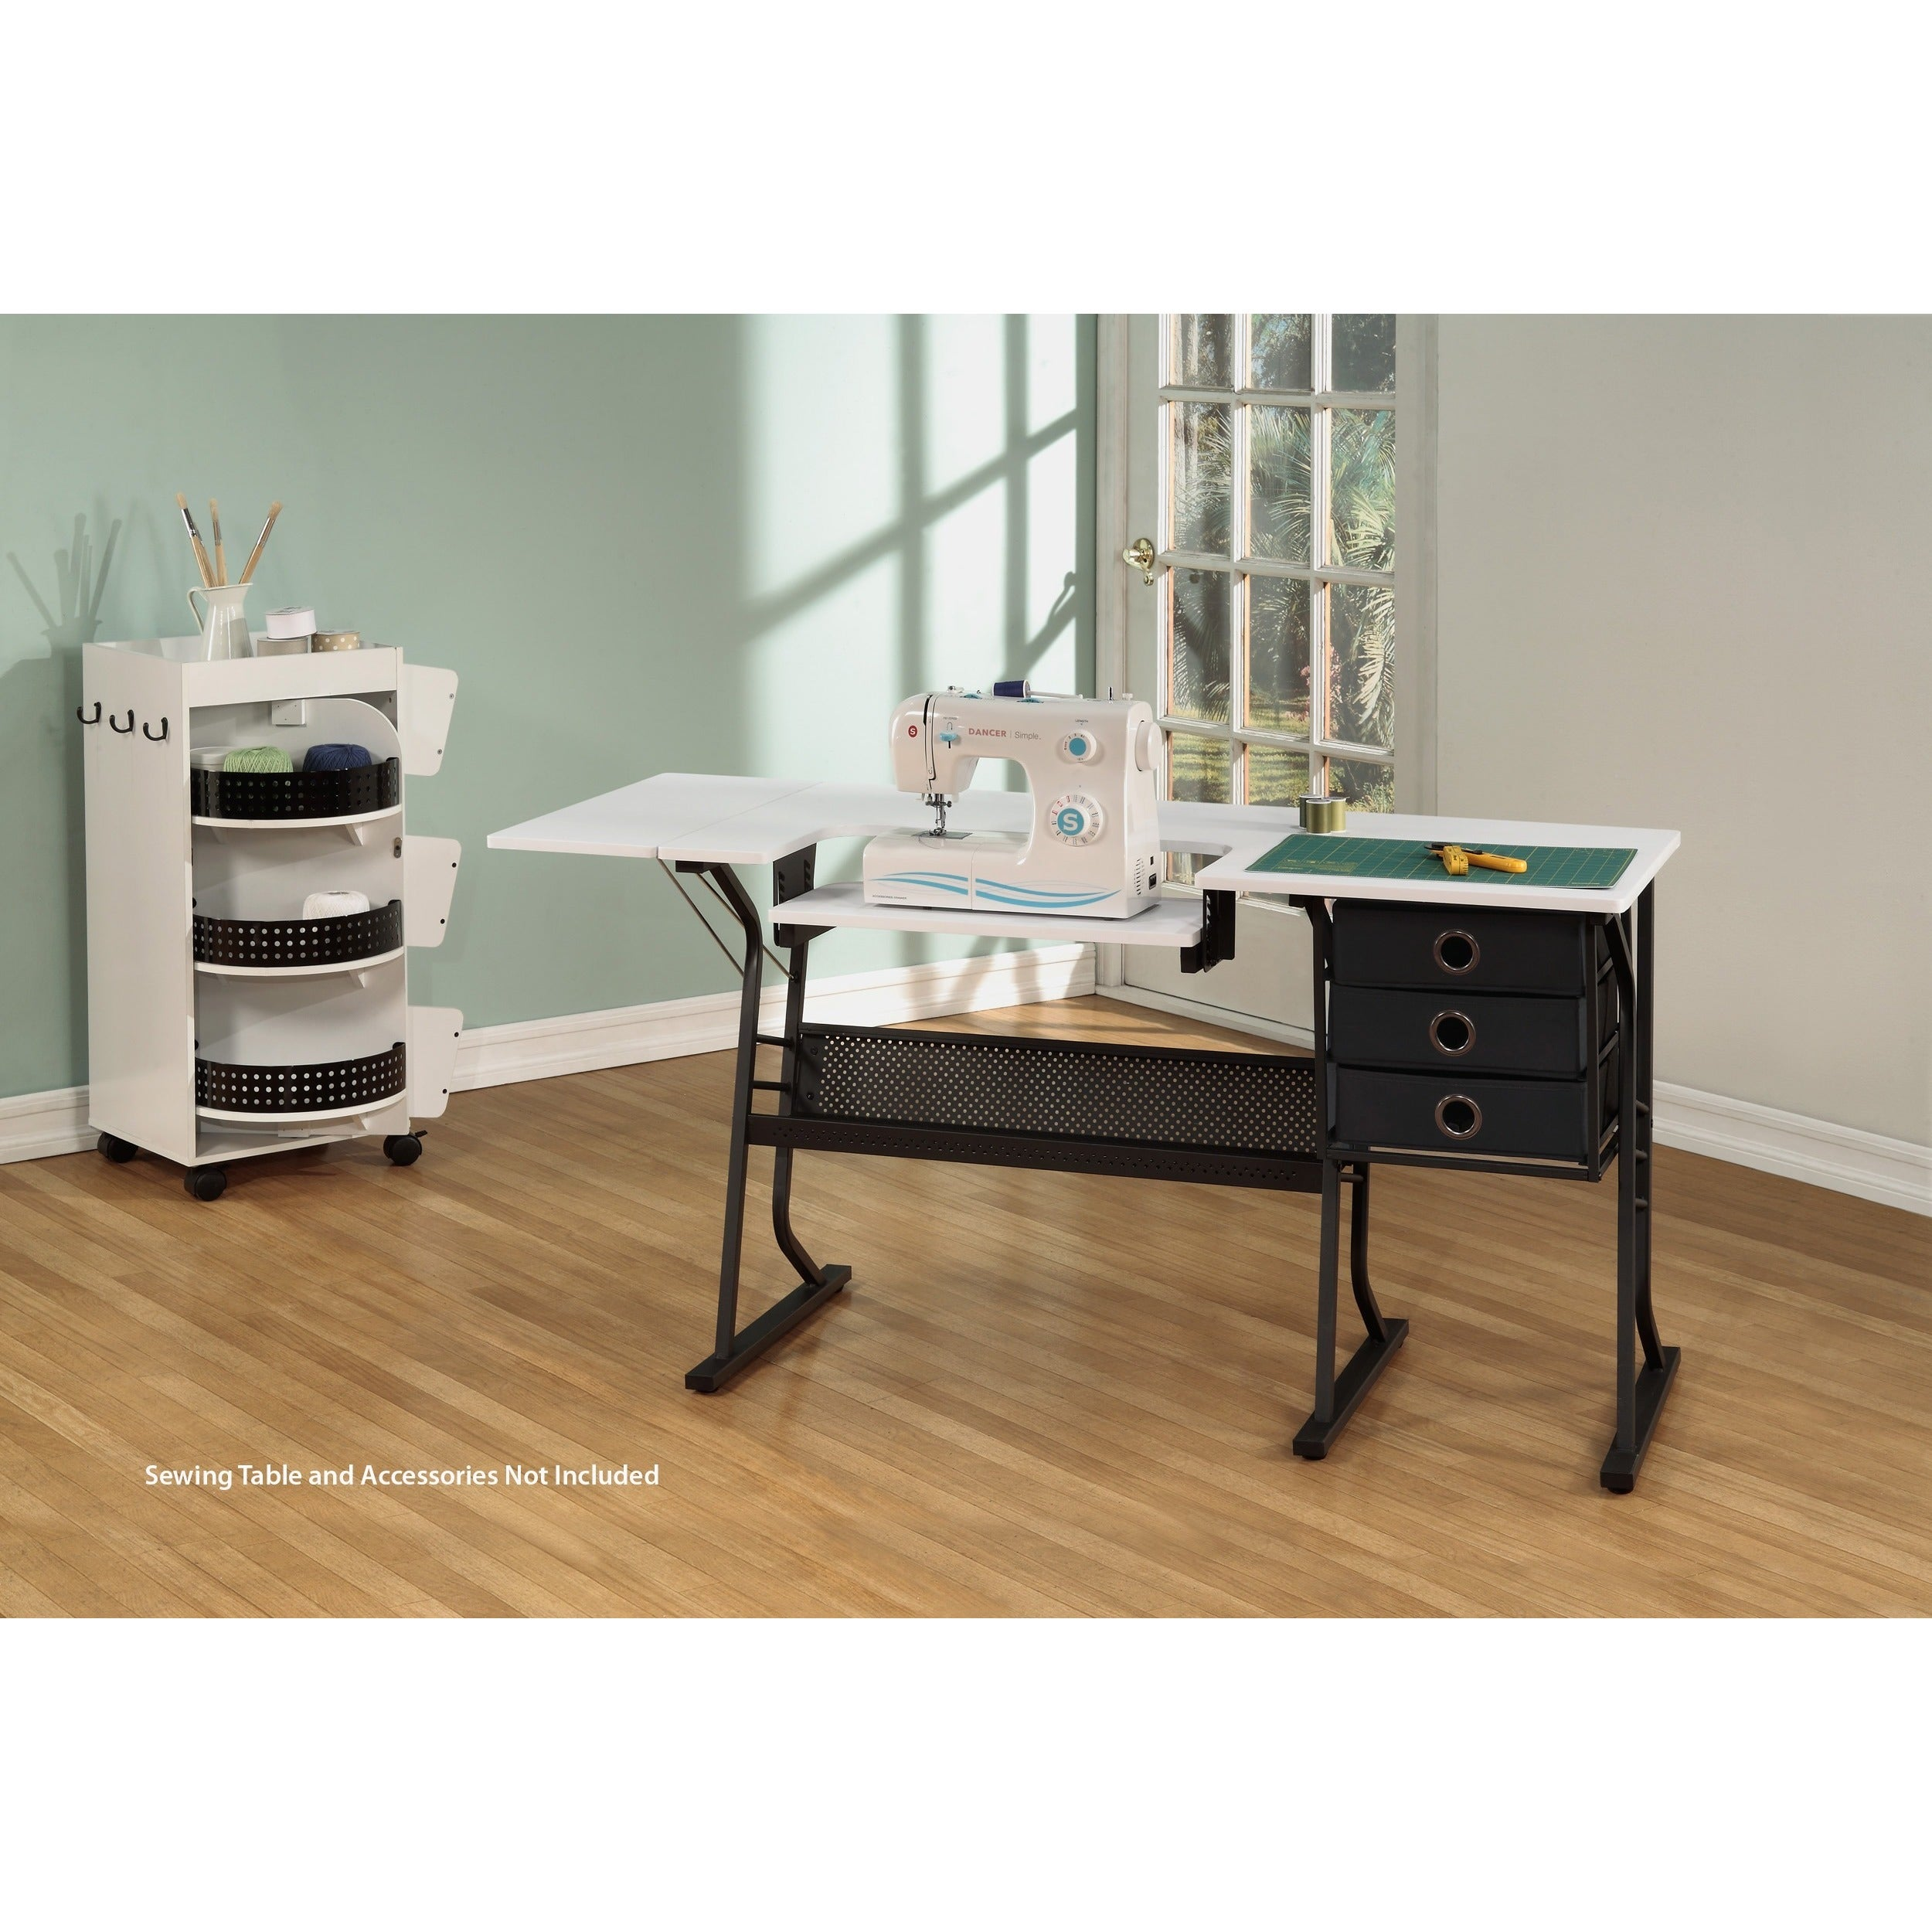 machine walmart eclipse hobby center ready com black sewing table sew ip white